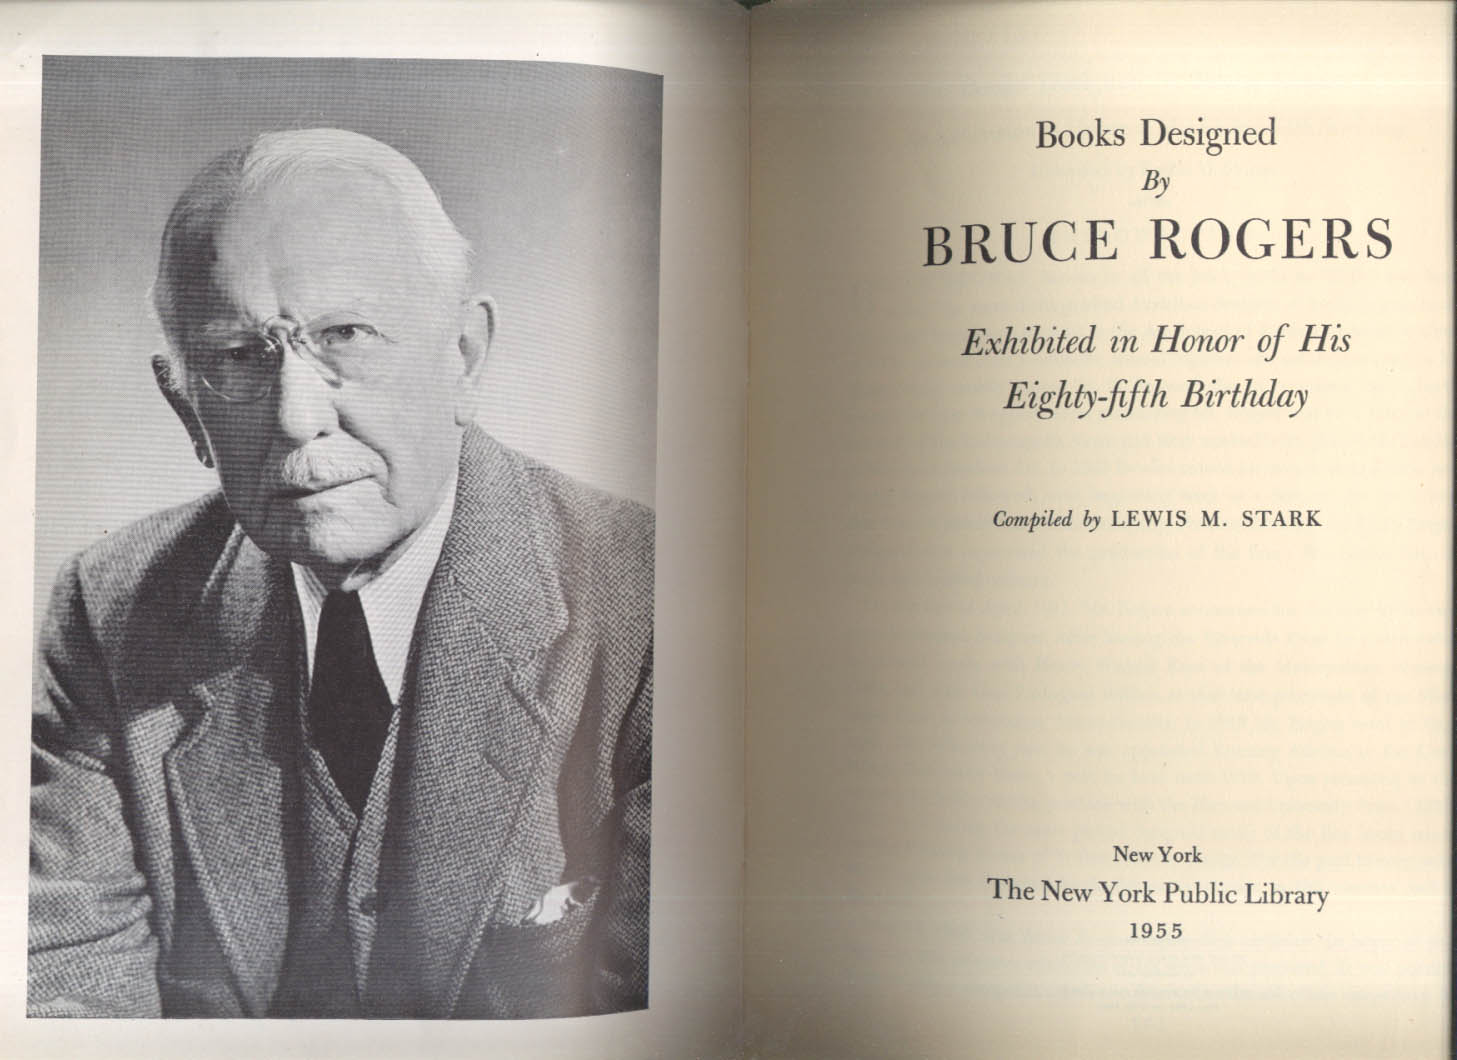 Books Designed by Bruce Rogers 85th Birthday Exhibit 1955 NY Public Library